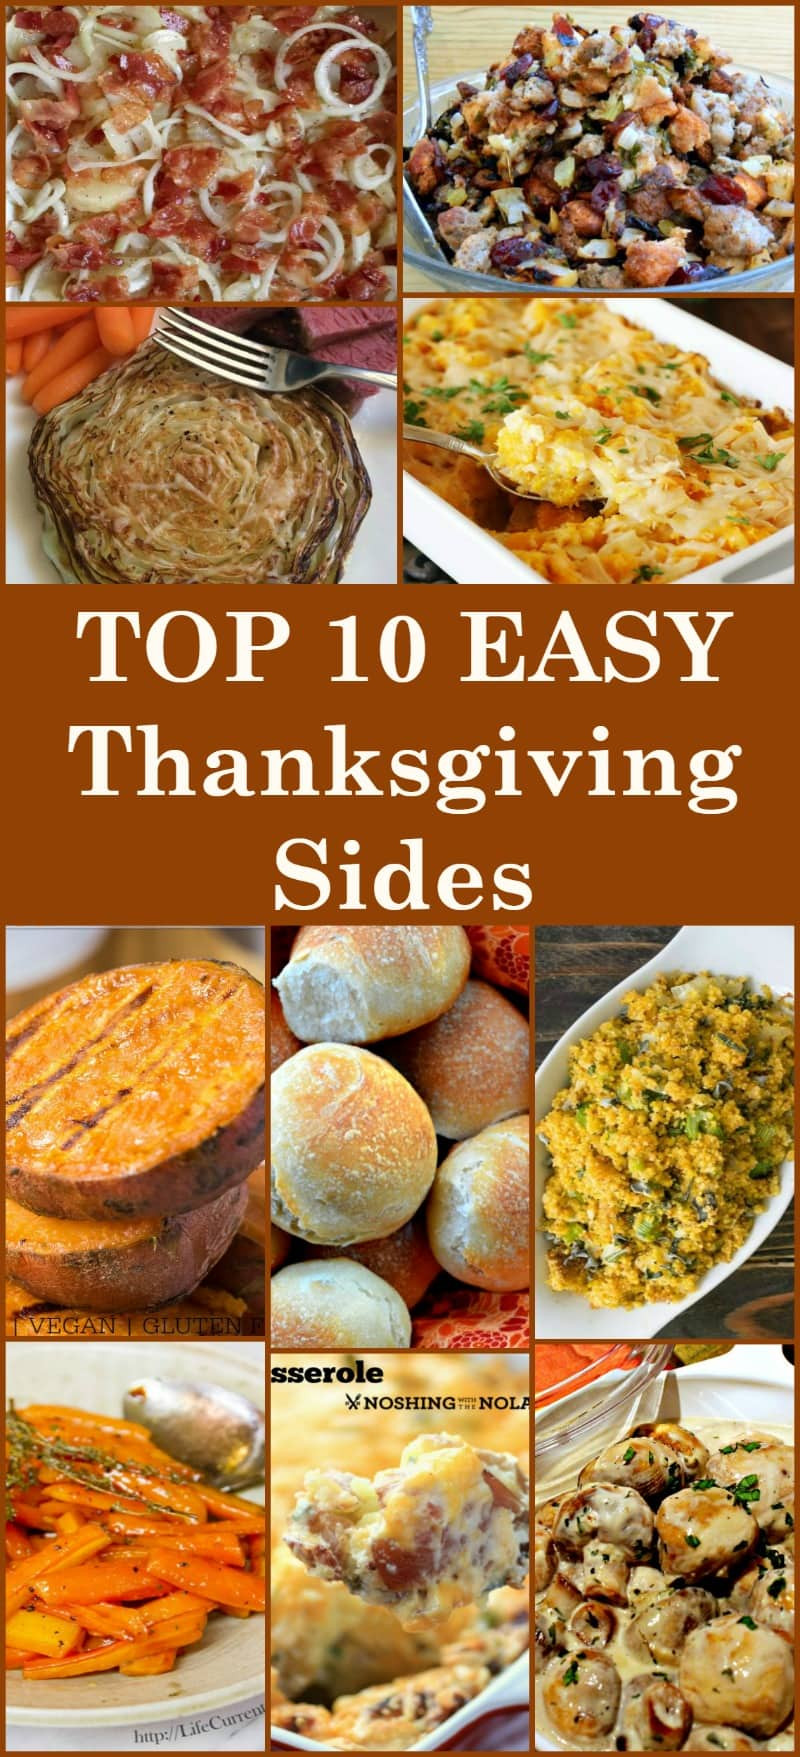 Make Ahead Side Dishes For Thanksgiving  The BEST Top 10 Thanksgiving Sides